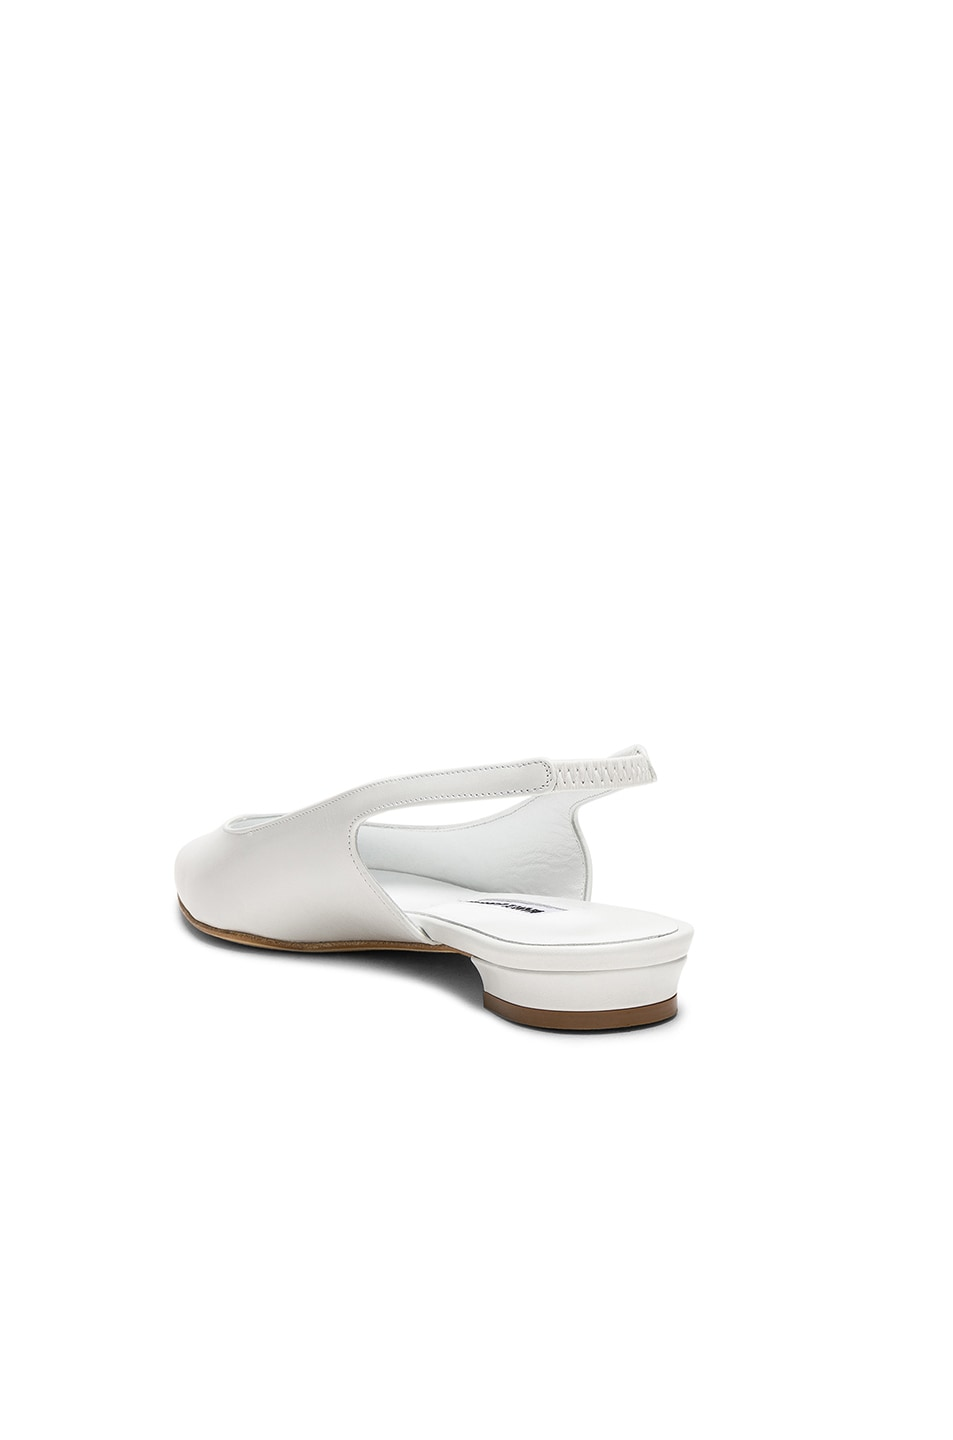 Image 3 of Manolo Blahnik Leather Allura Flats in White Calf